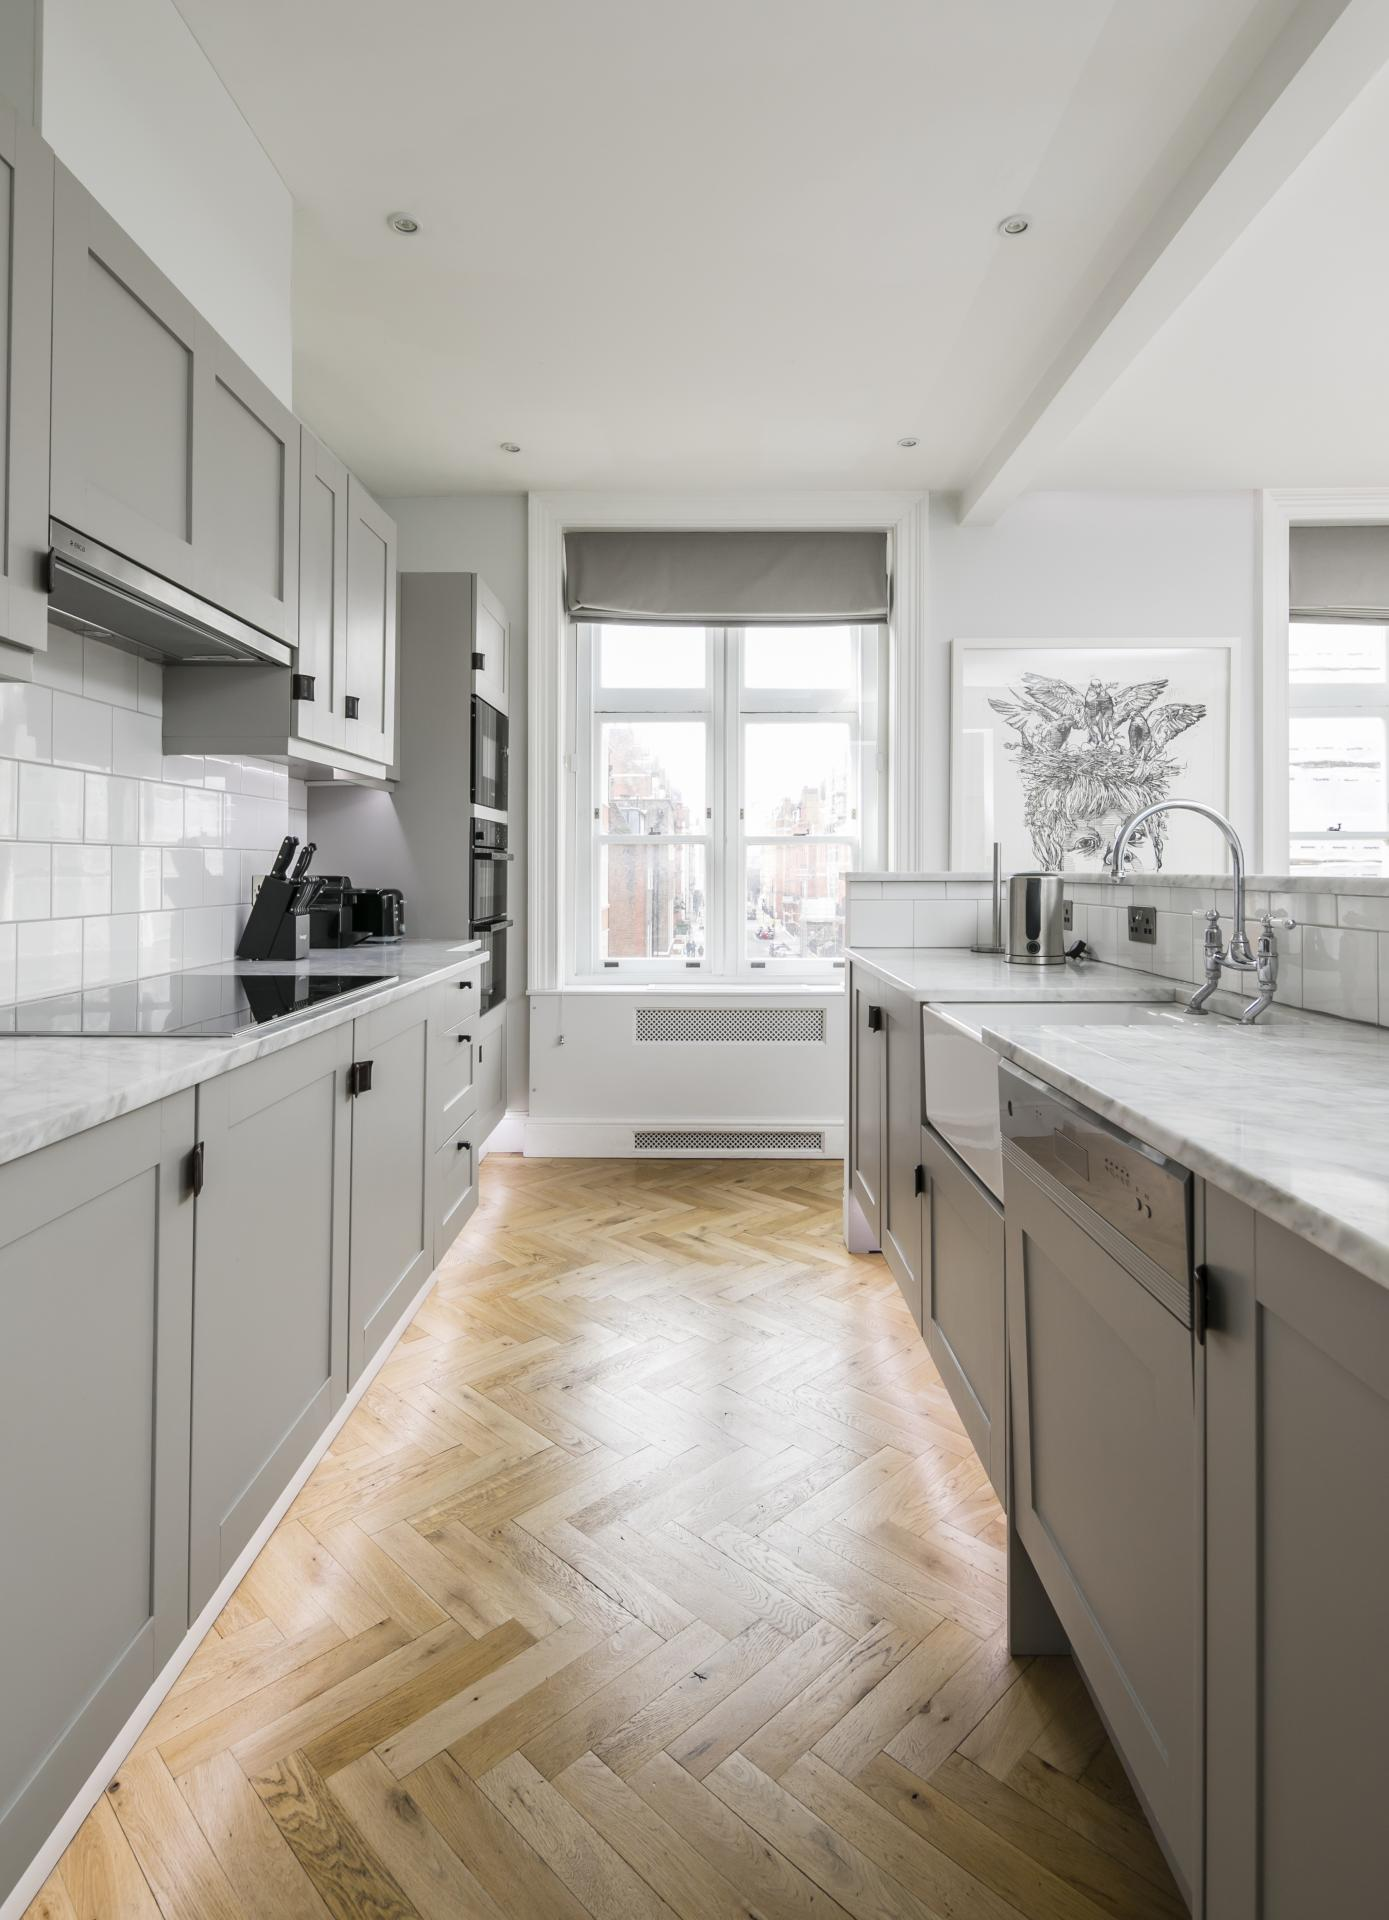 Kitchen at Luxurious Mayfair Apartments, Mayfair, London